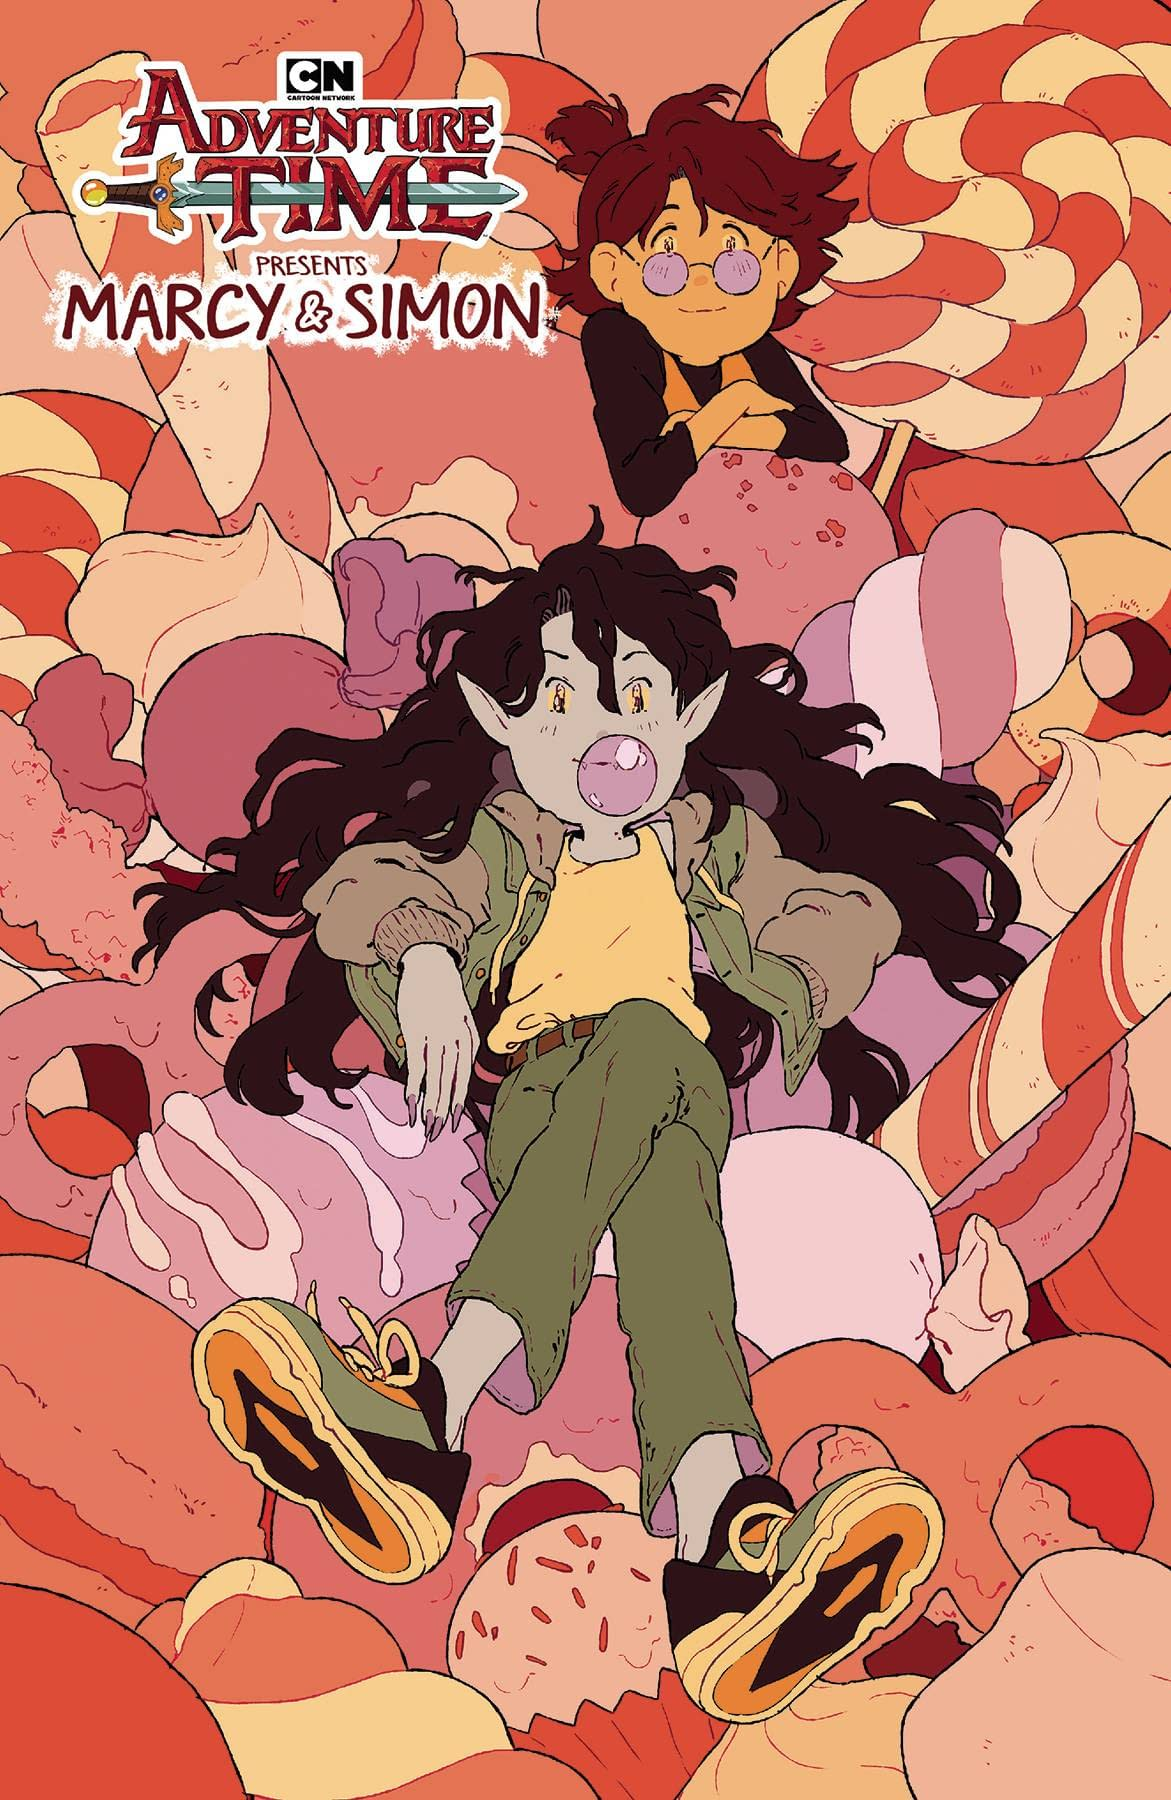 ADVENTURE TIME MARCY & SIMON #3 (OF 6) CONVENTION EXC VAR